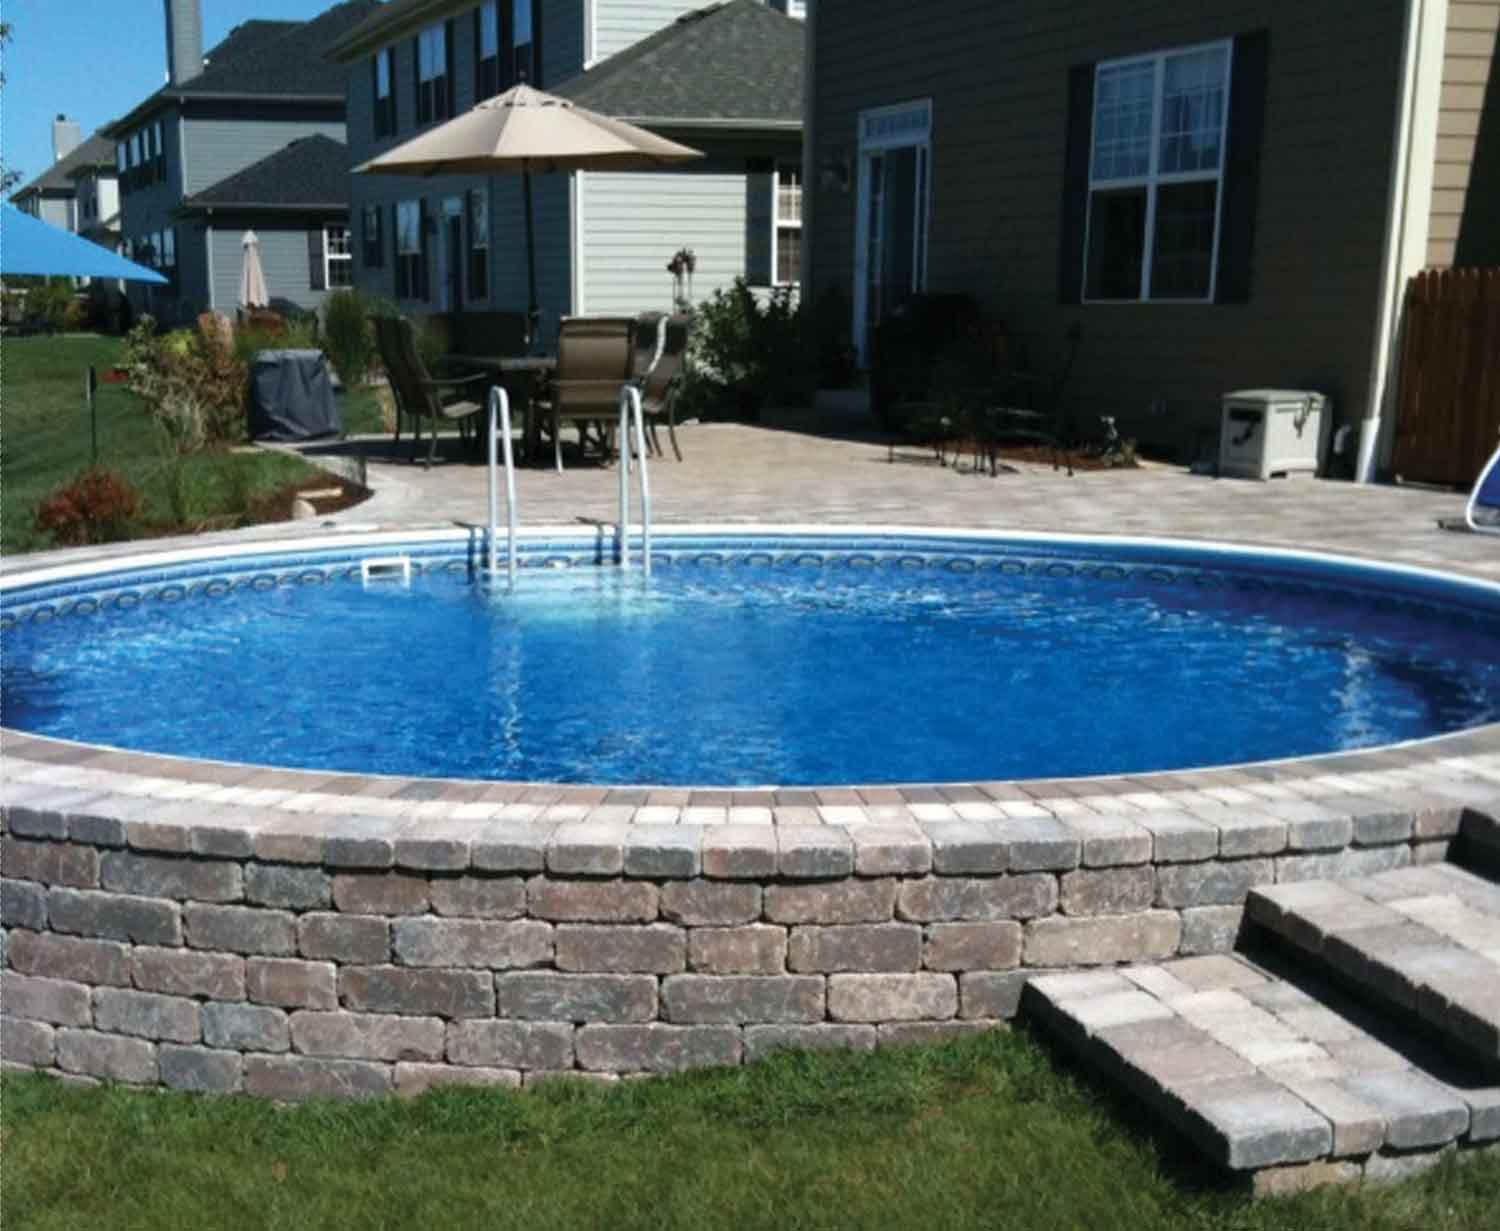 a paver wall around an above ground pool what a neat idea bet it would cost just as much as an in ground pool once you finished the pavers